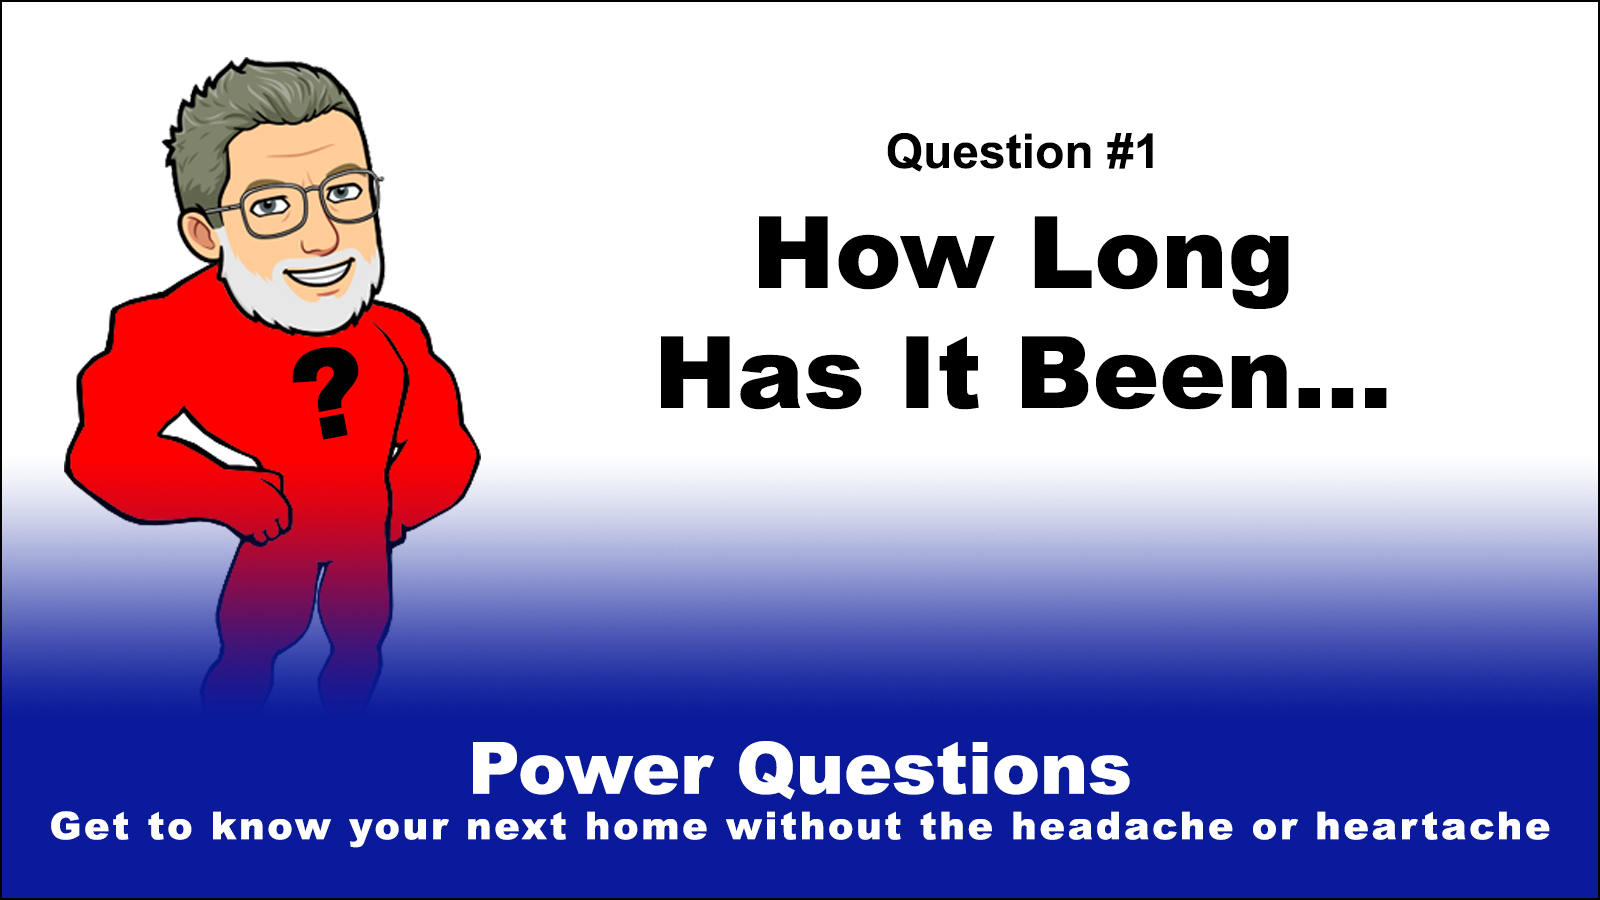 Power Question 1: How Long Has It Been On The Market?